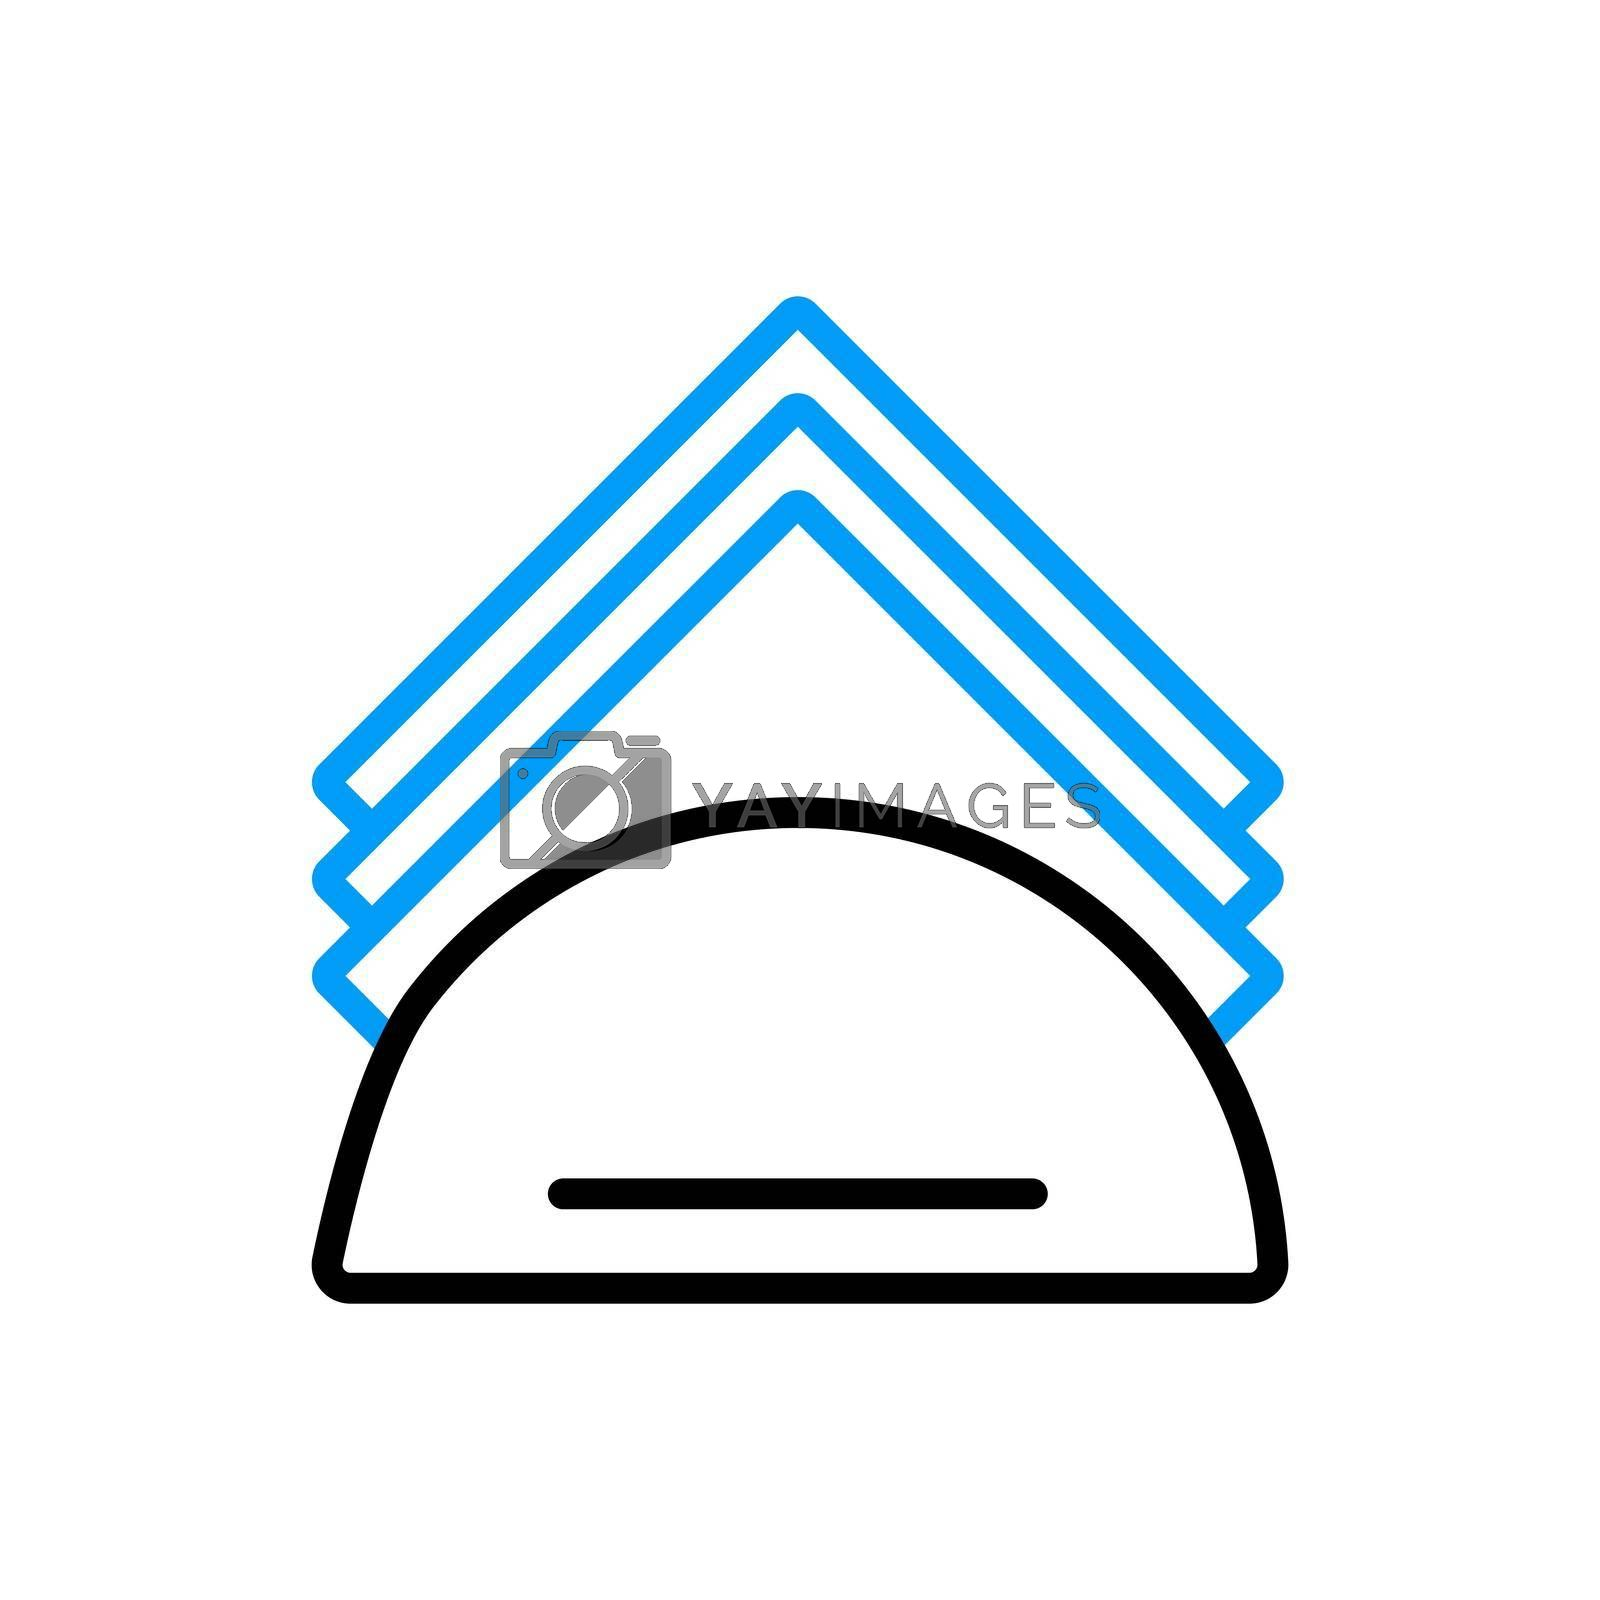 Royalty free image of Napkins and napkin holder vector flat icon by nosik